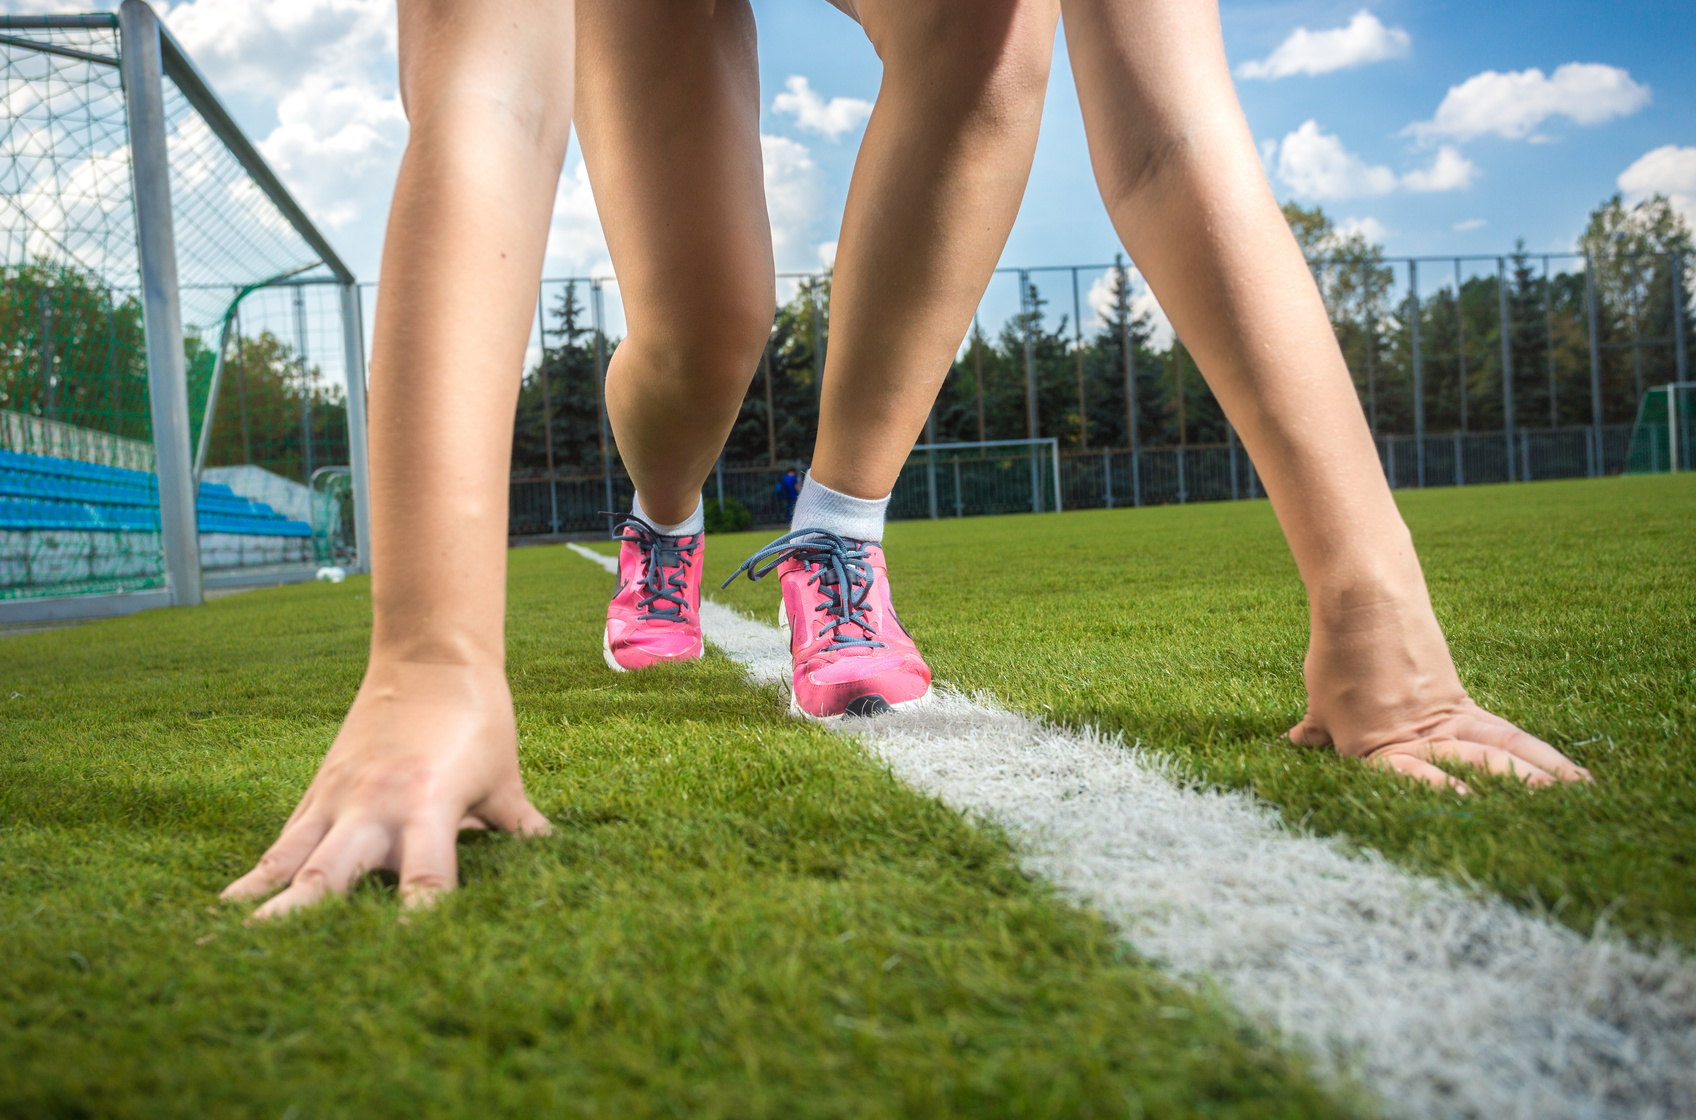 Closeup shot of slim sporty woman getting ready to run on grass track